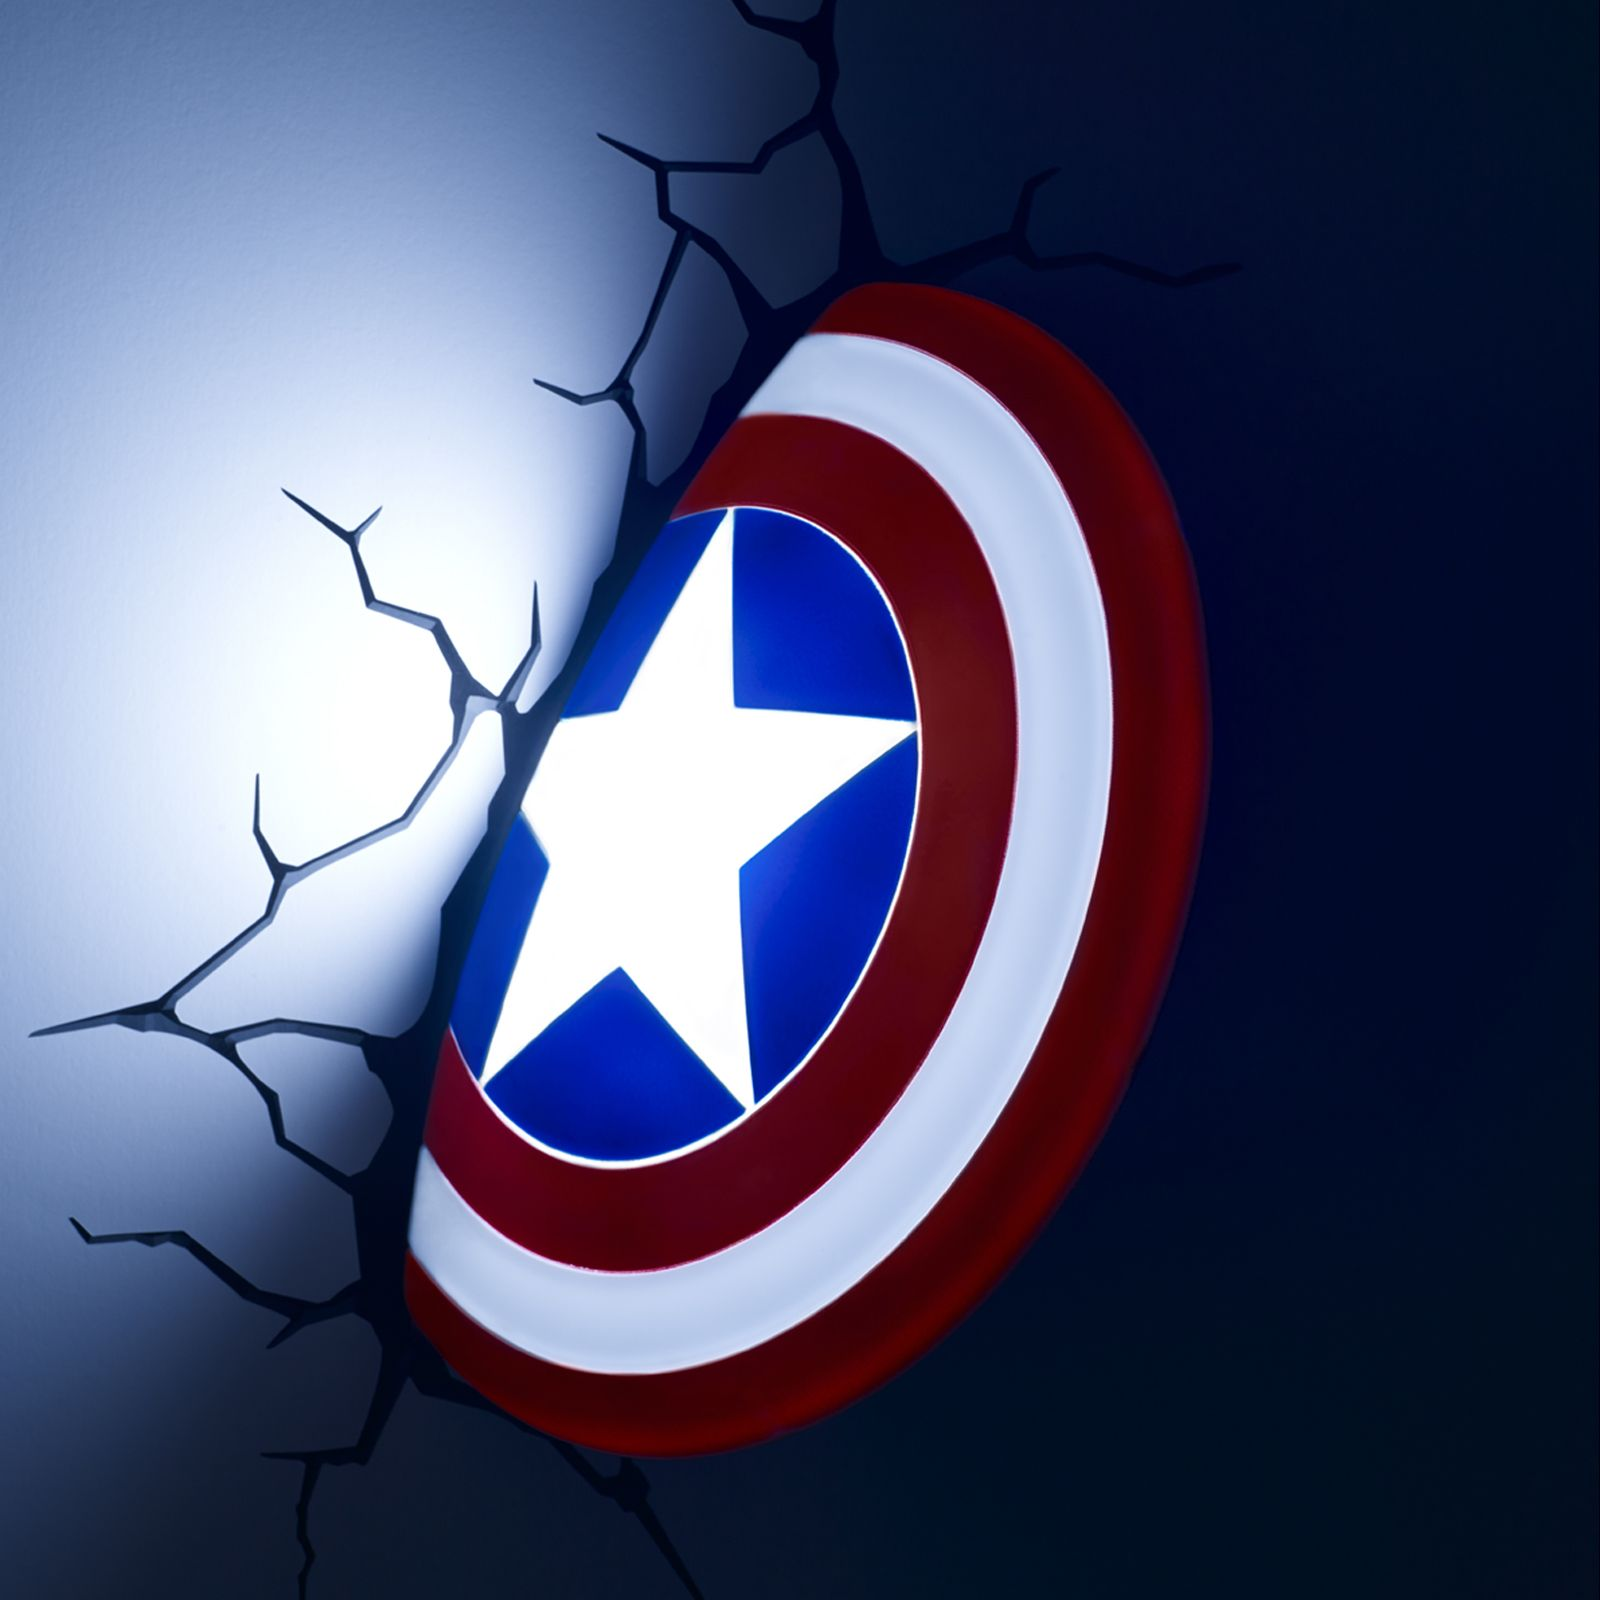 The Avengers Wall Lamps : MARVEL CAPTAIN AMERICA SHIELD 3D FX LED WALL LIGHT LAMP NEW AVENGERS eBay